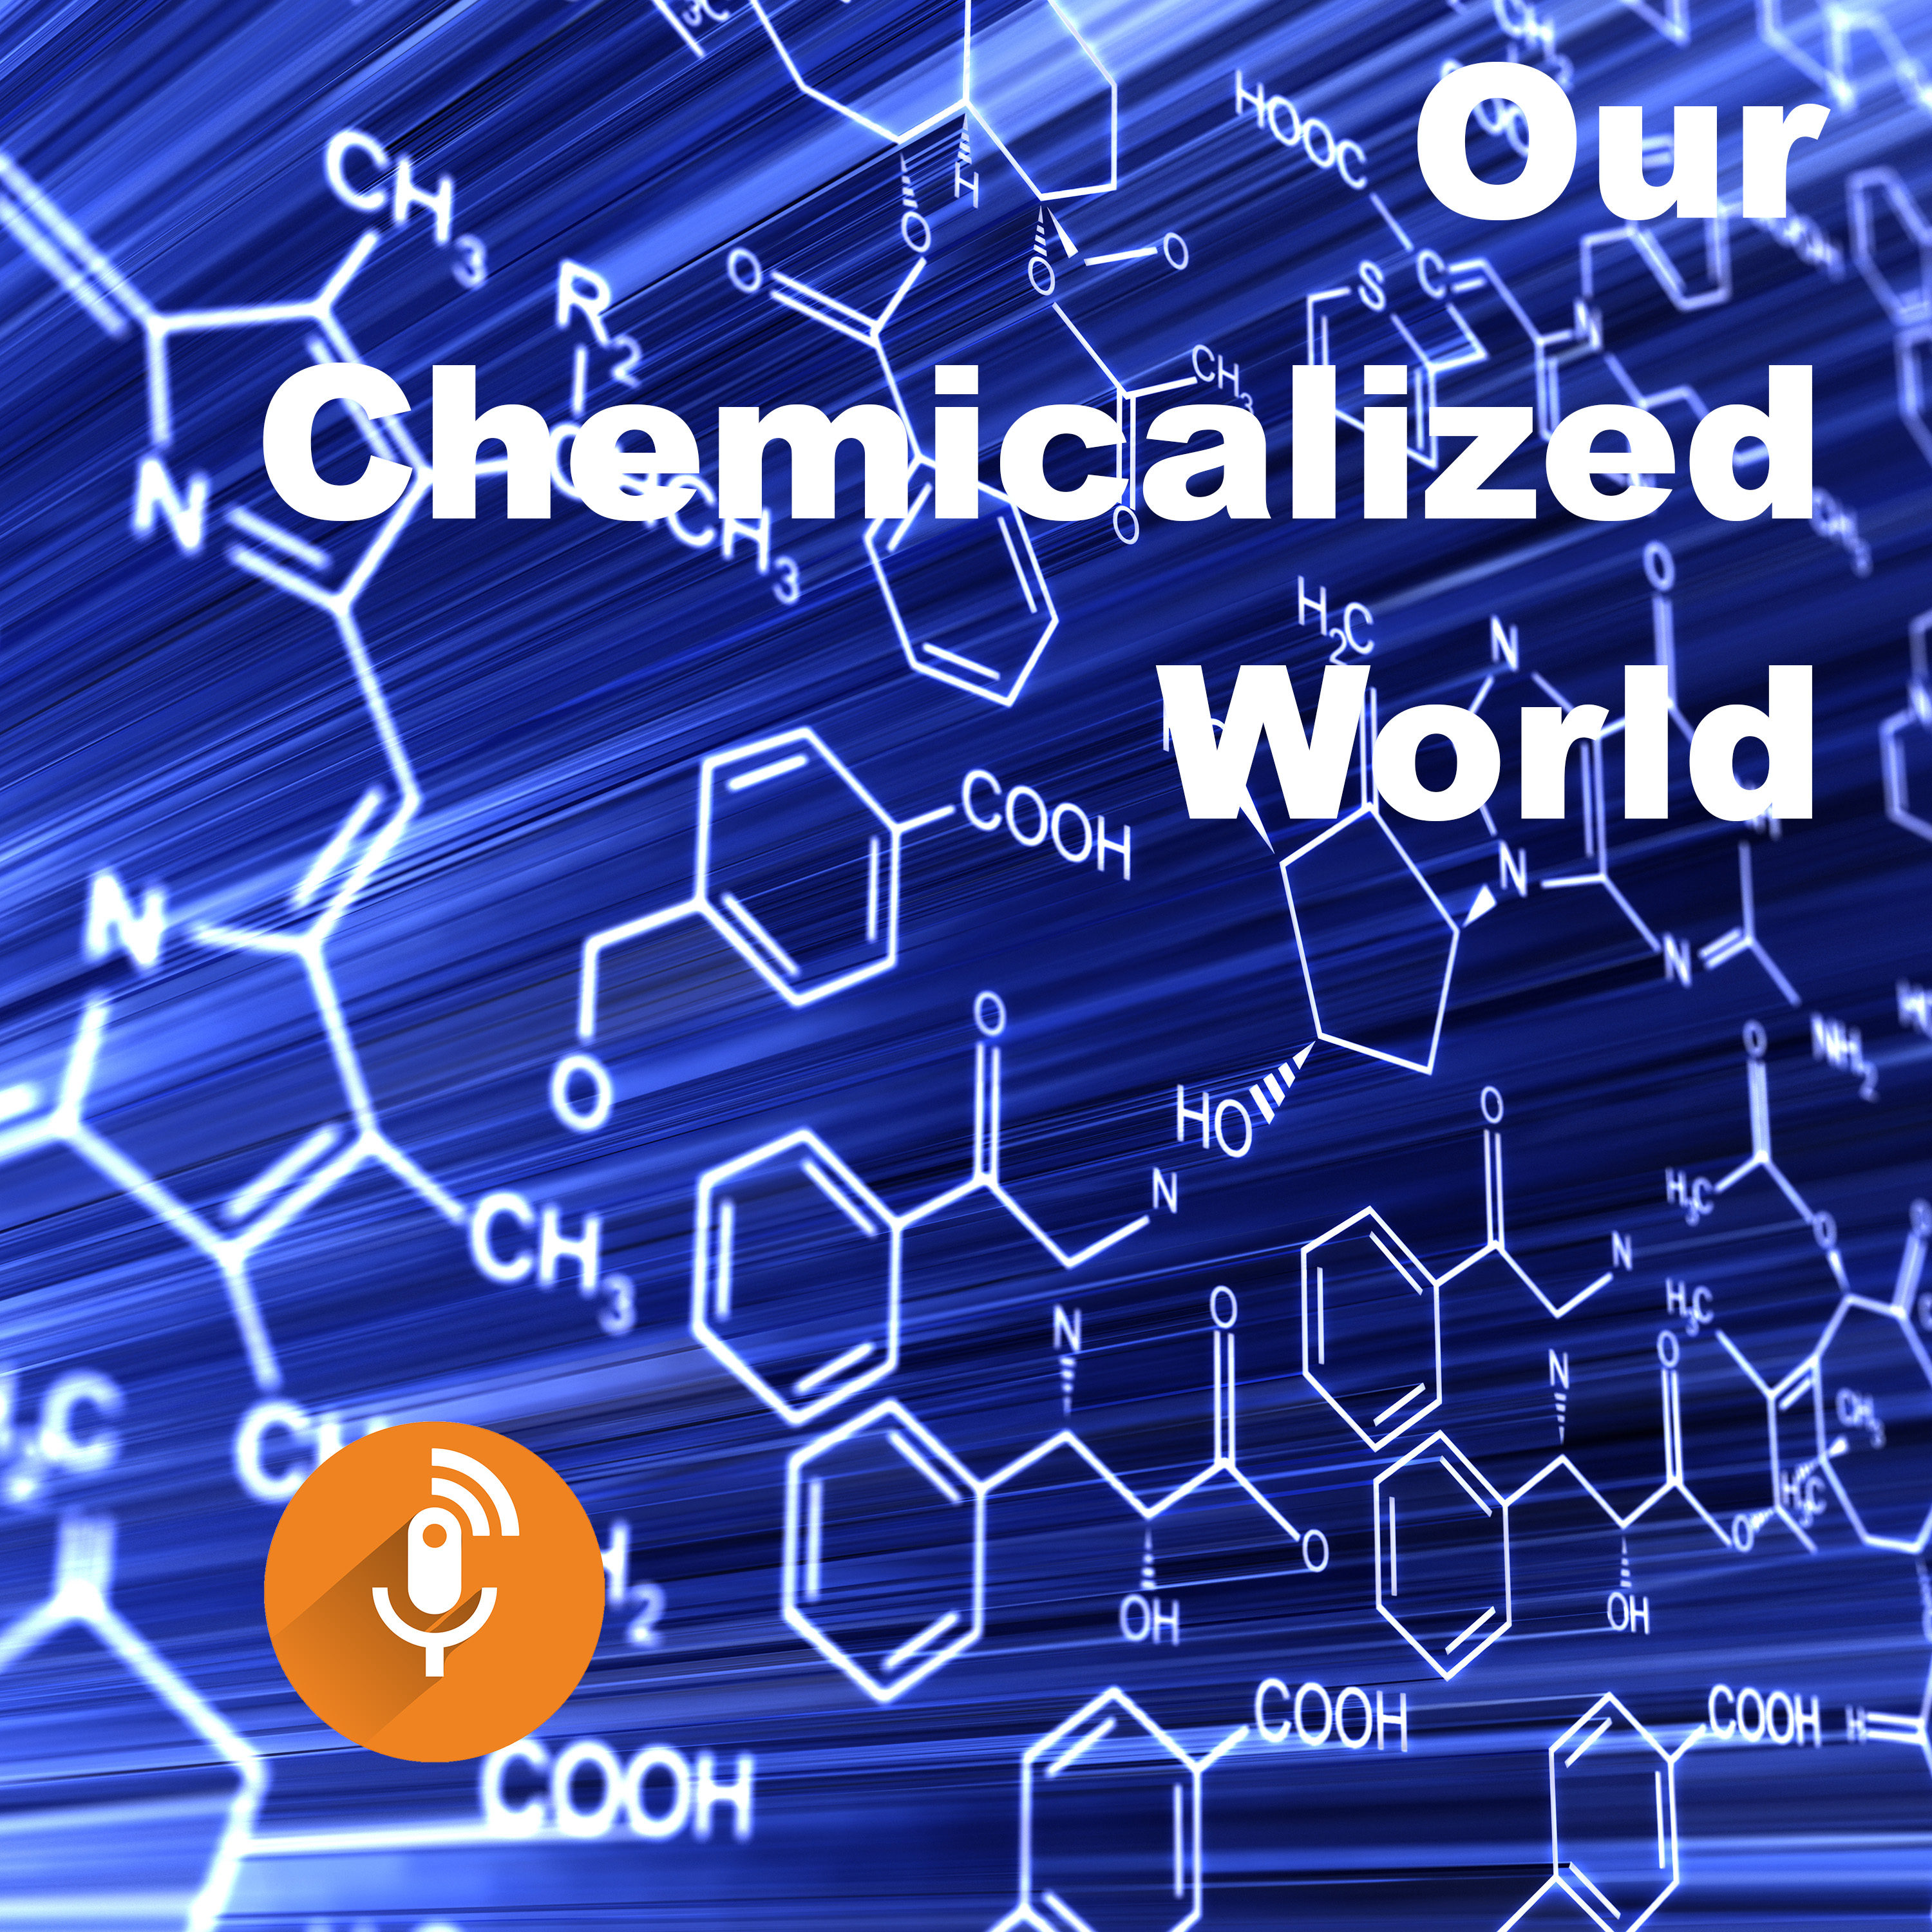 Our chemicalized world